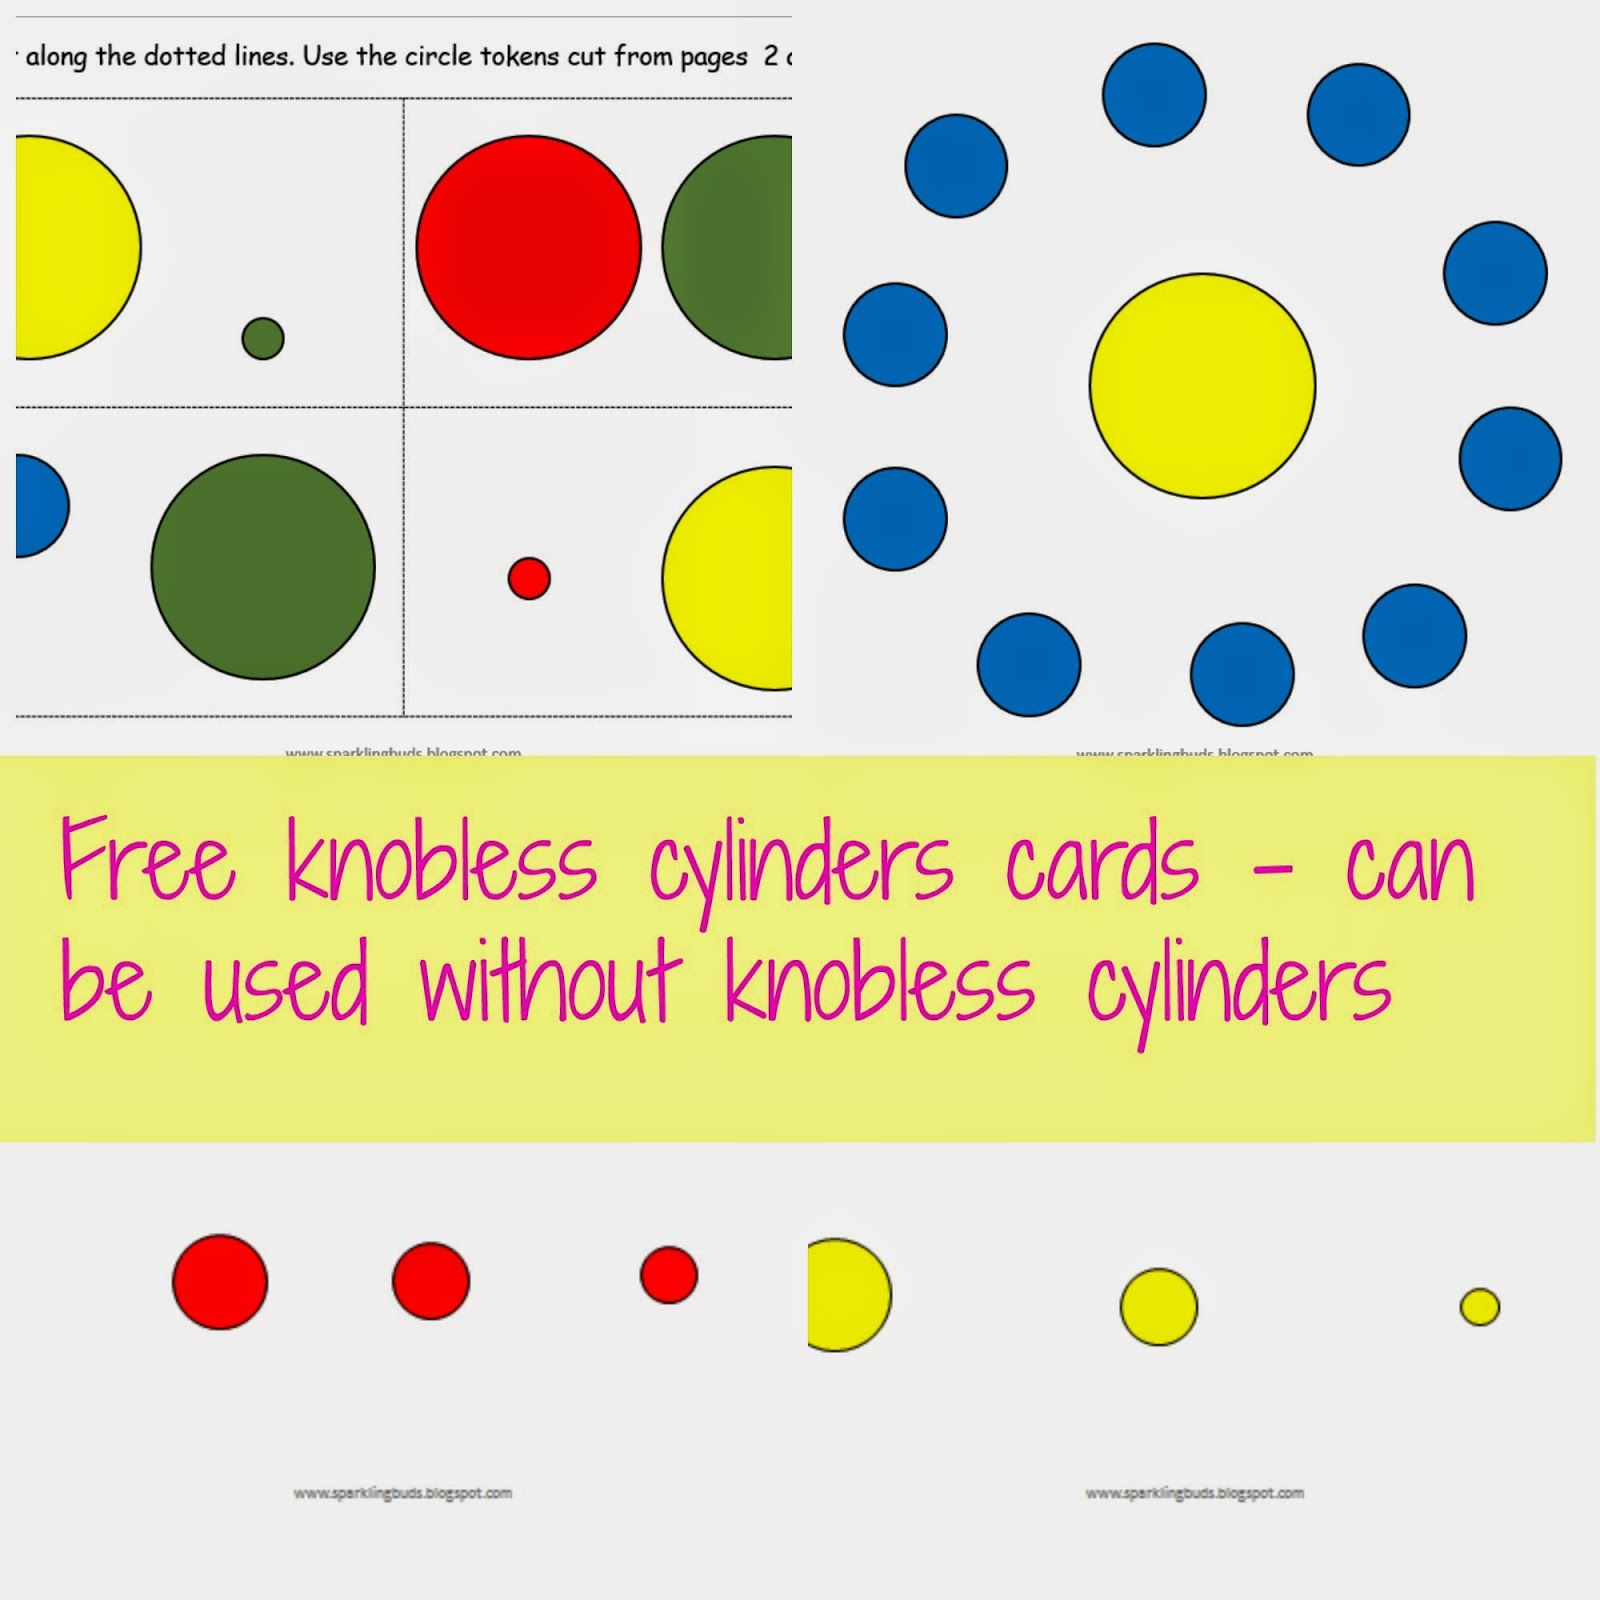 Free Knobless Cylinder Cards From Edutainment At Home